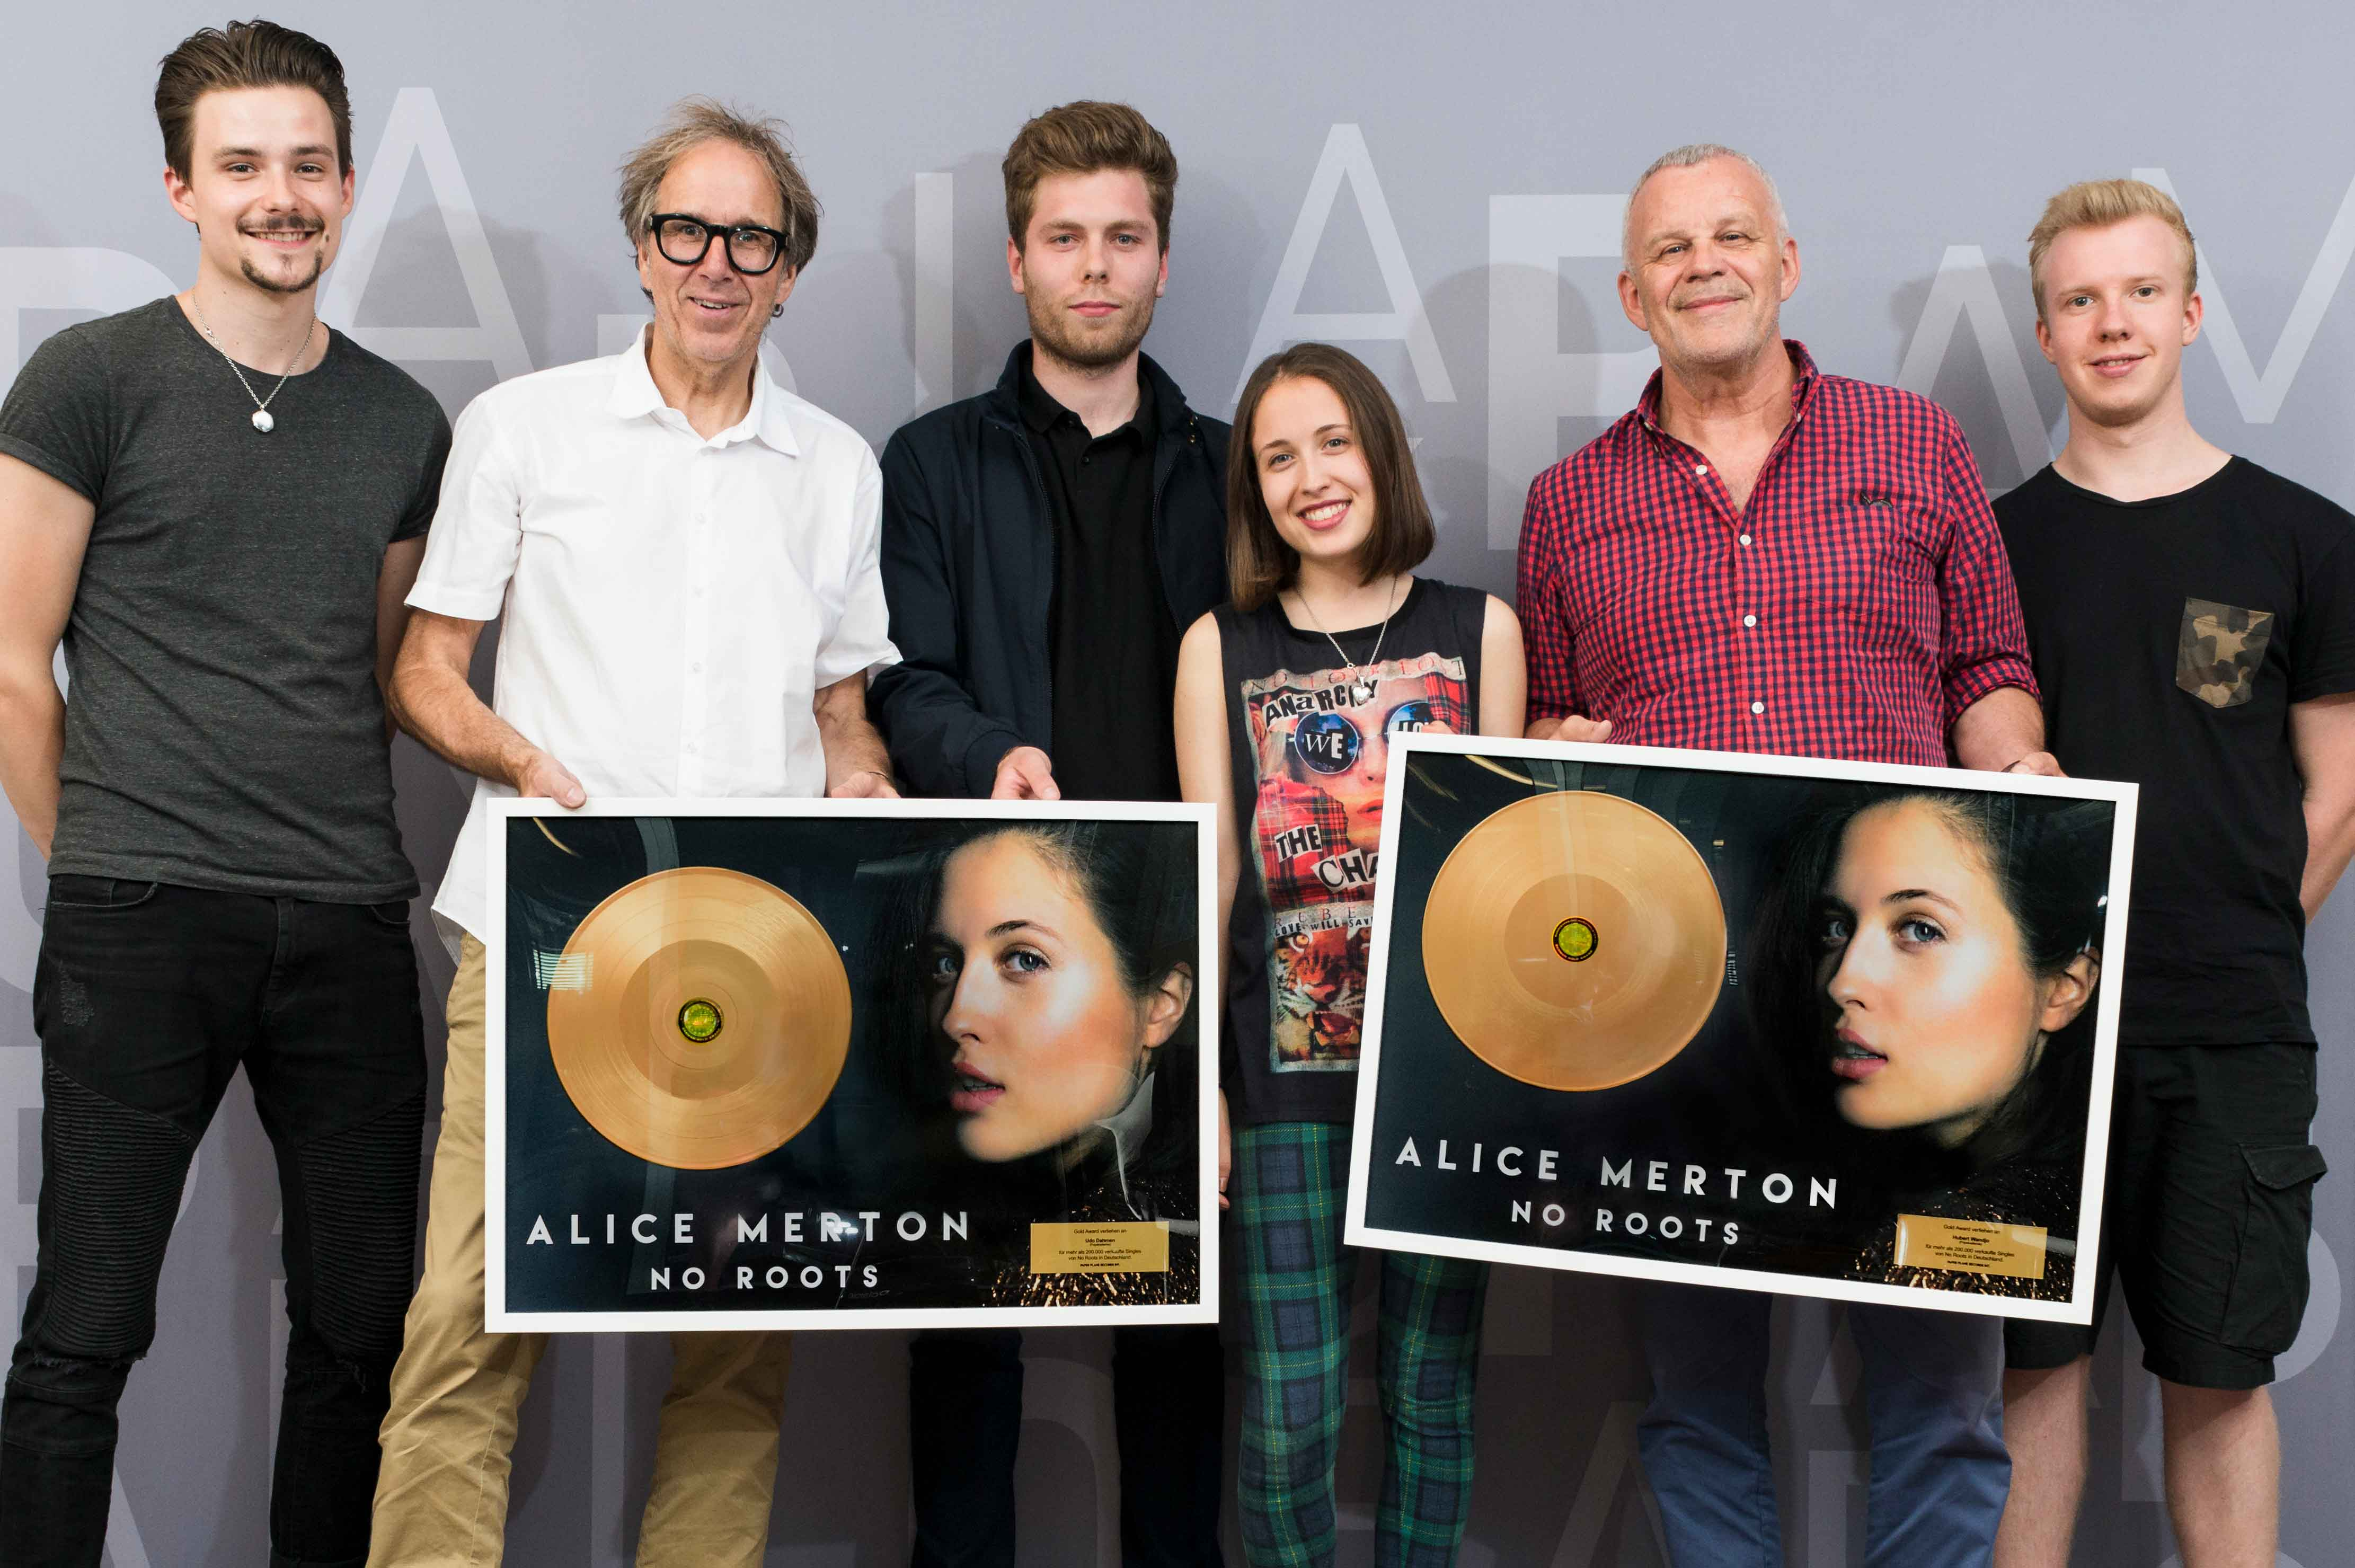 Gold for Alice Merton and the Popakademie